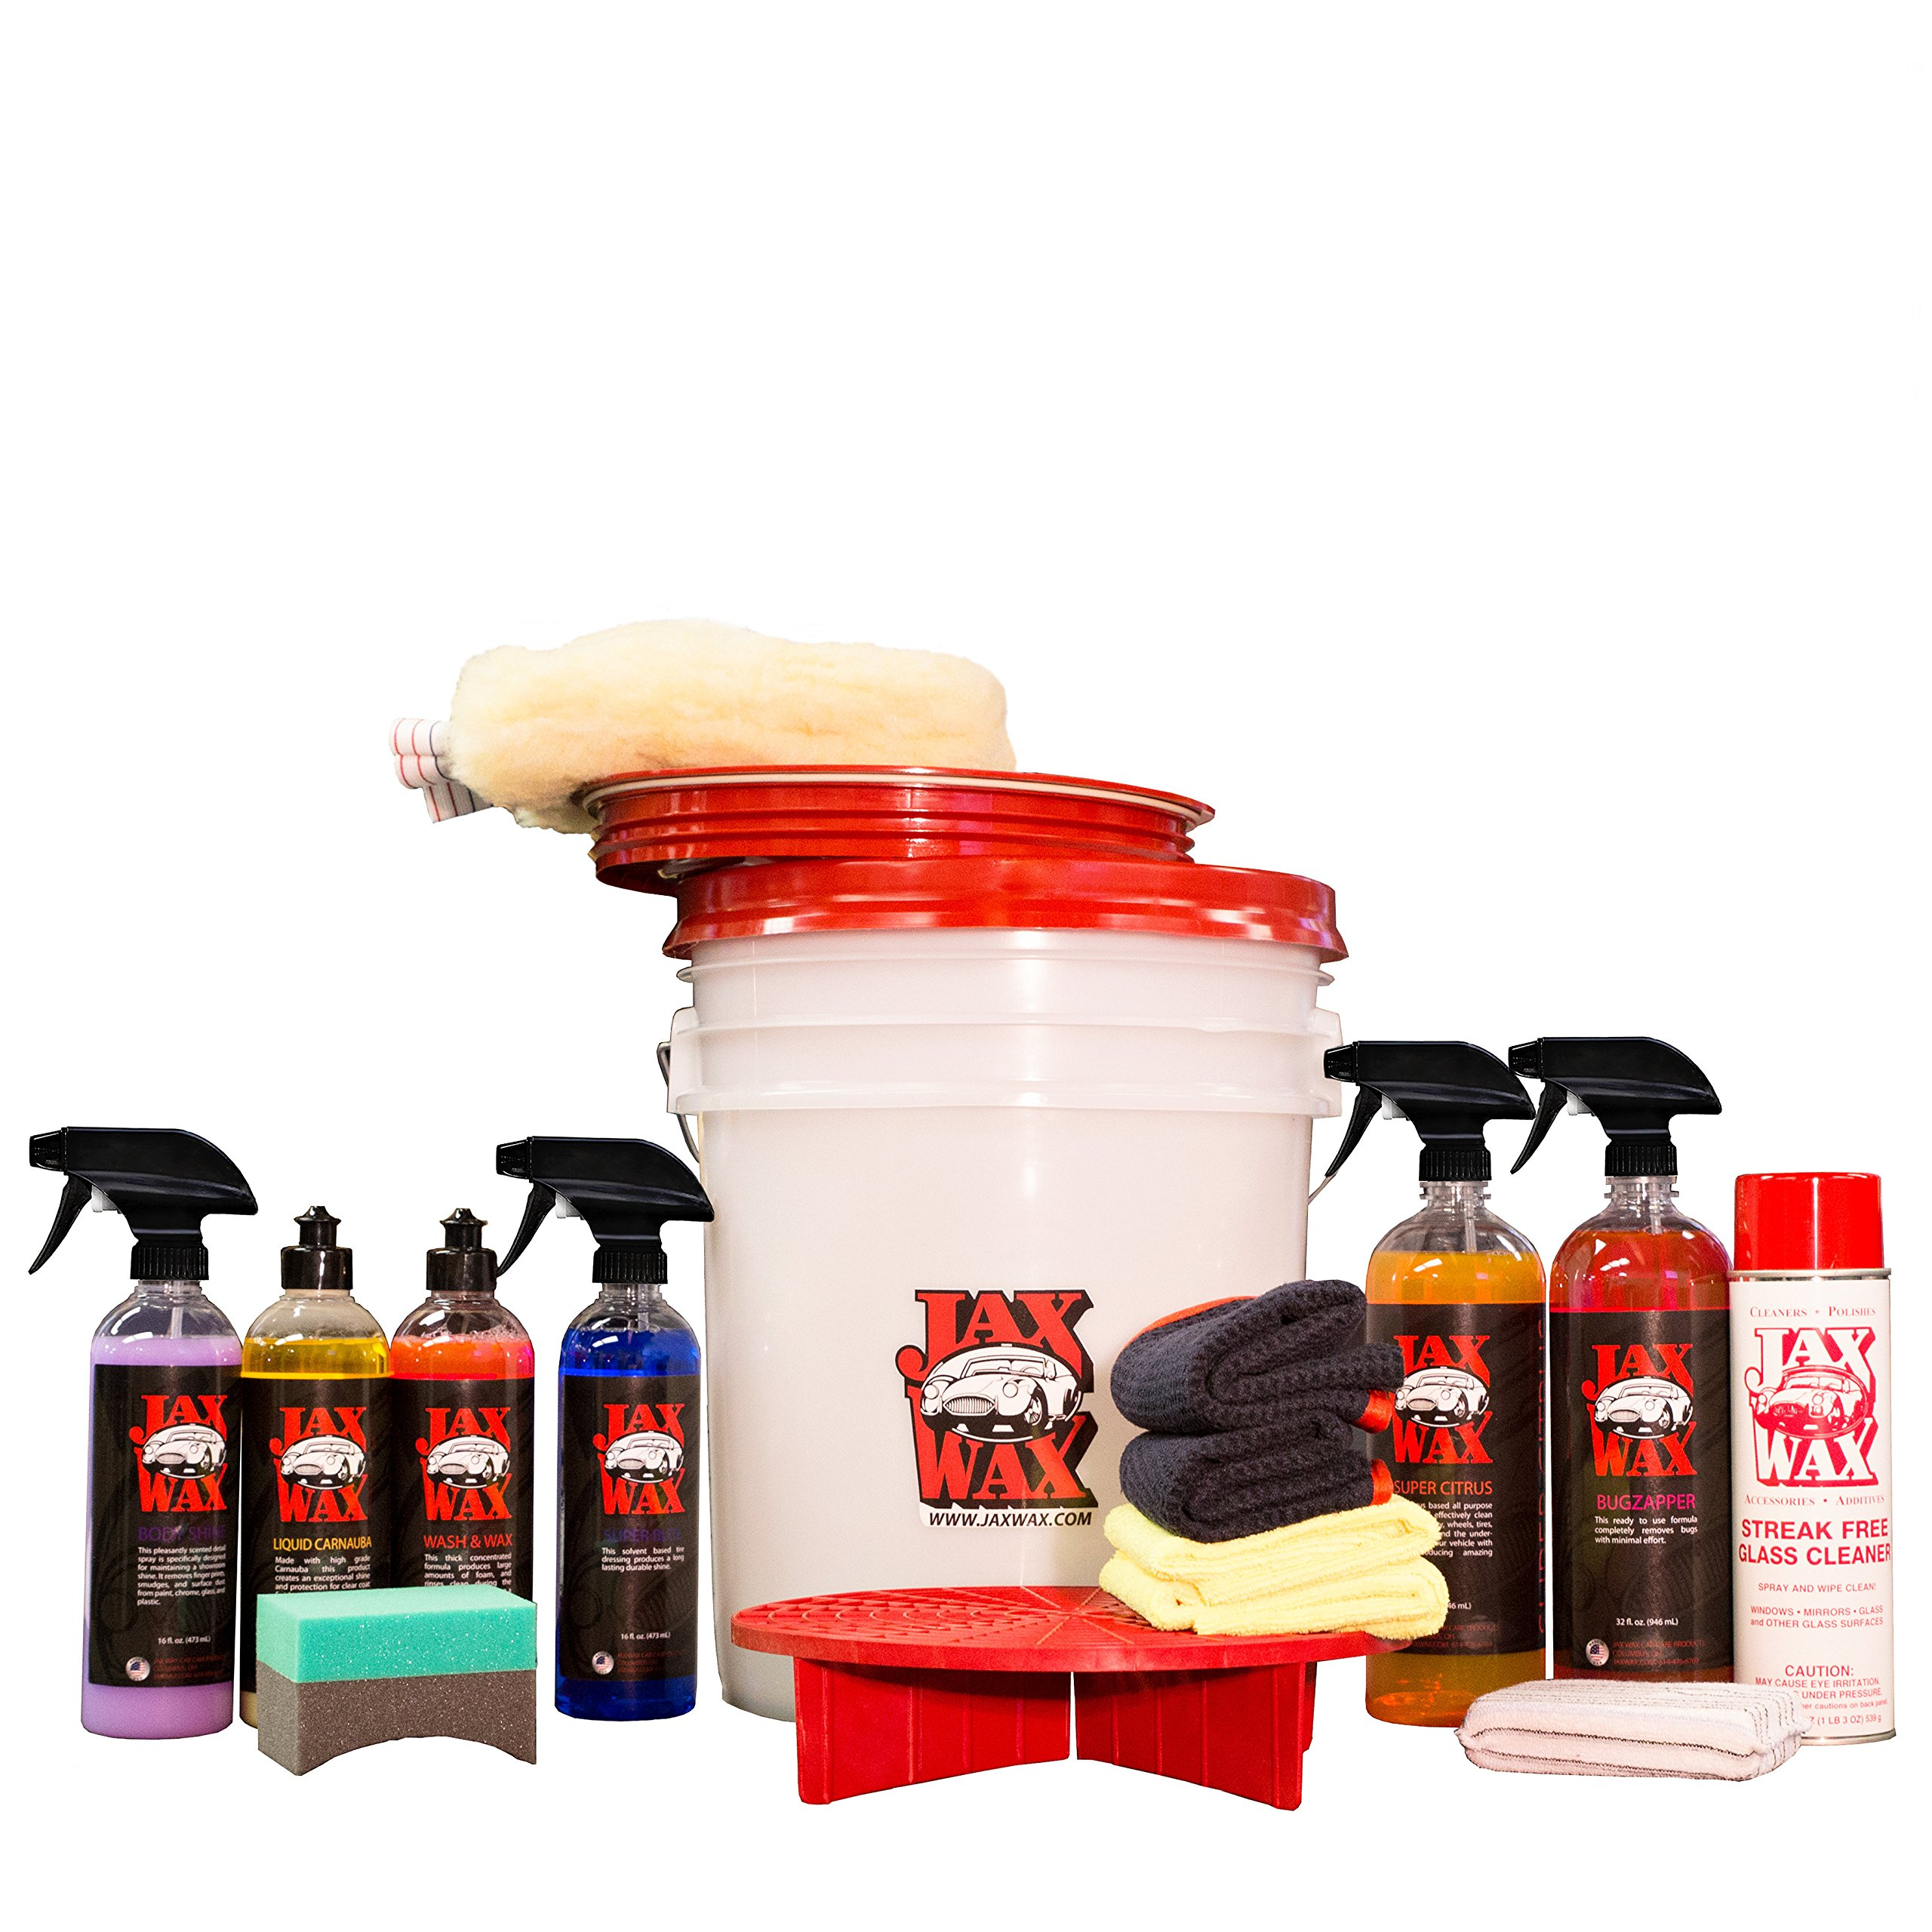 Cheap car wash wax find car wash wax deals on line at alibaba get quotations jax wax complete scratch free wash wax and detail bucket car care organizer kit solutioingenieria Gallery